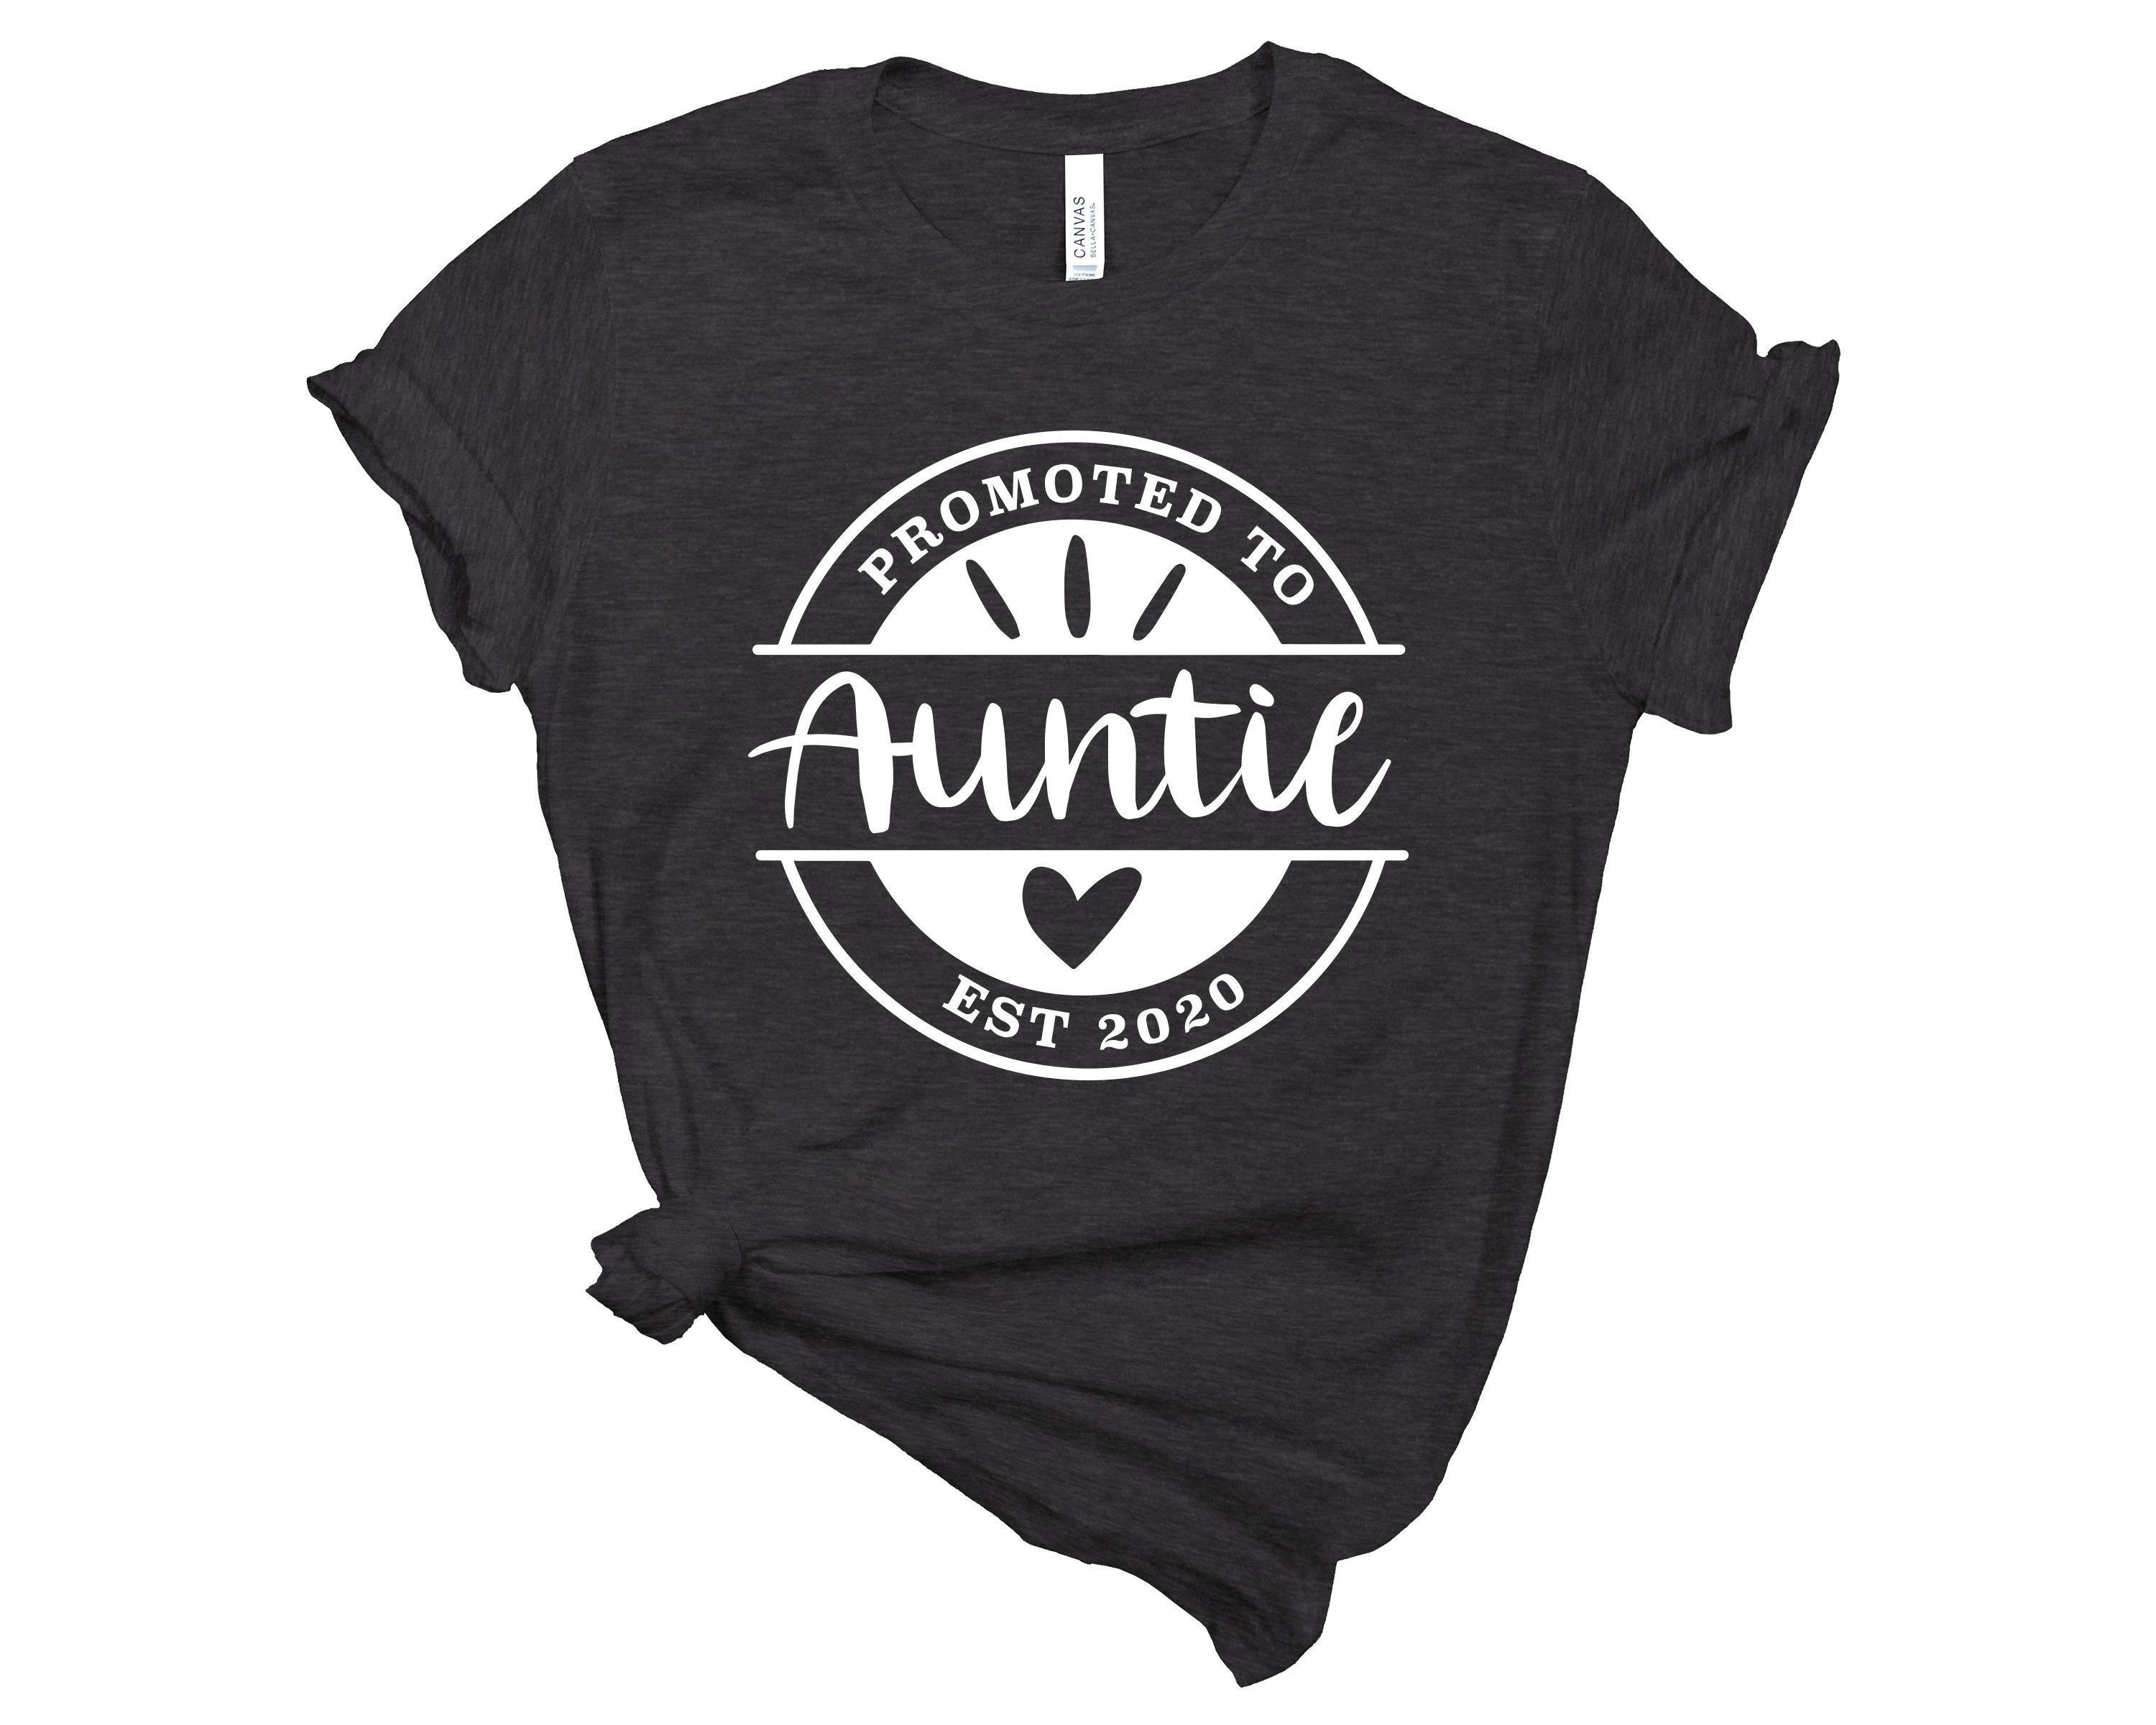 Auntie T-Shirt | AuntieSaurus Shirt | Promoted to Auntie Shirt | Aunt Shirt | Best Aunt Ever | Aunt Tourage | Aunt Gift | Gift for Aunt